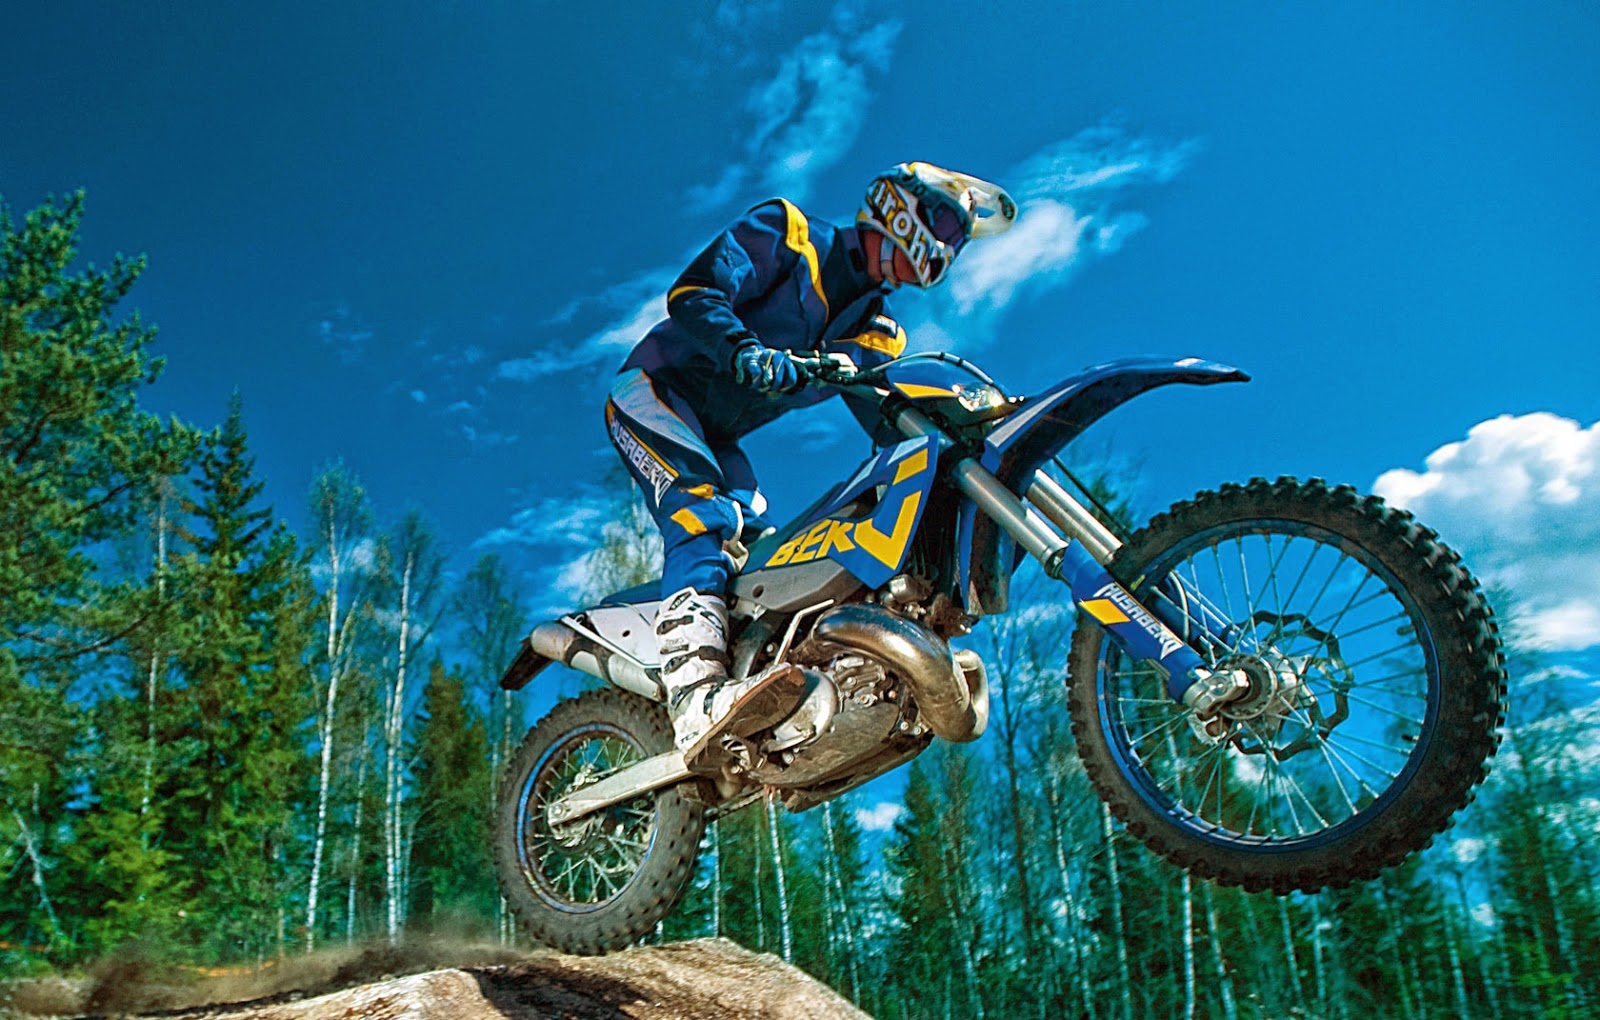 Husaberg TE 250 New Adventures Dirt Motorcycles